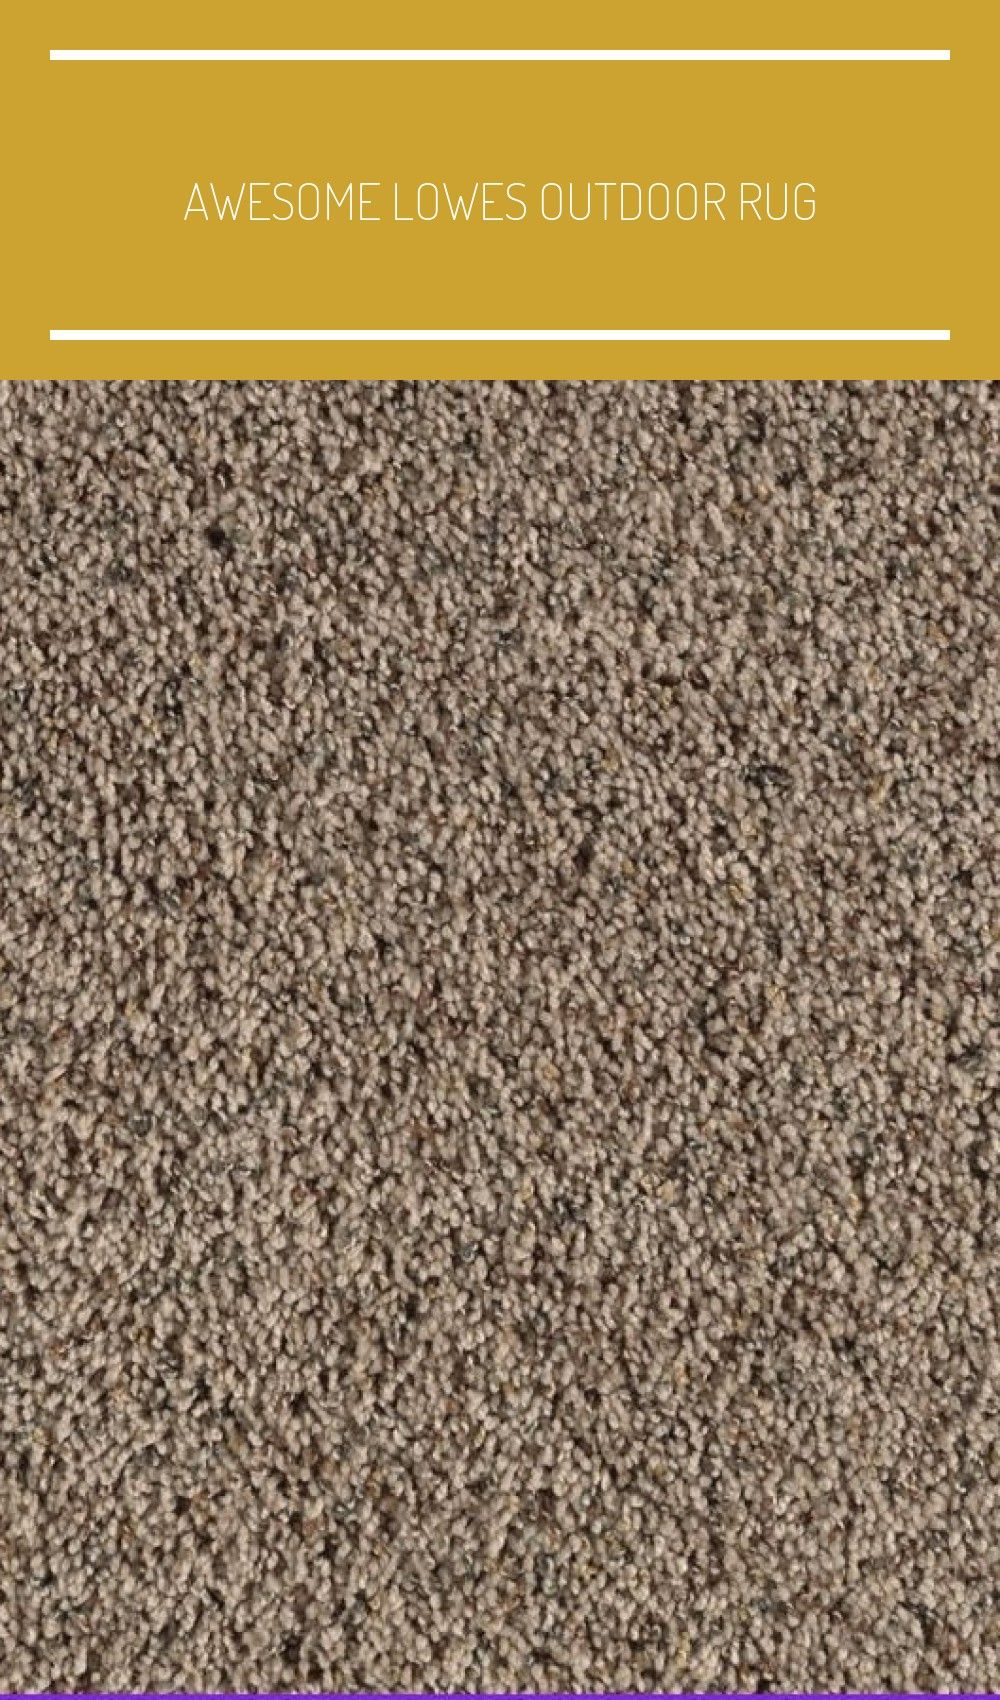 Awesome Lowes Outdoor Rugs Lowes Outdoor Rugs Awesome Lowes Outdoor Rugs Taupe Carpet Home Lowesoutd In 2020 Carpet Colors Lowes Outdoor Rugs Dark Grey Carpet